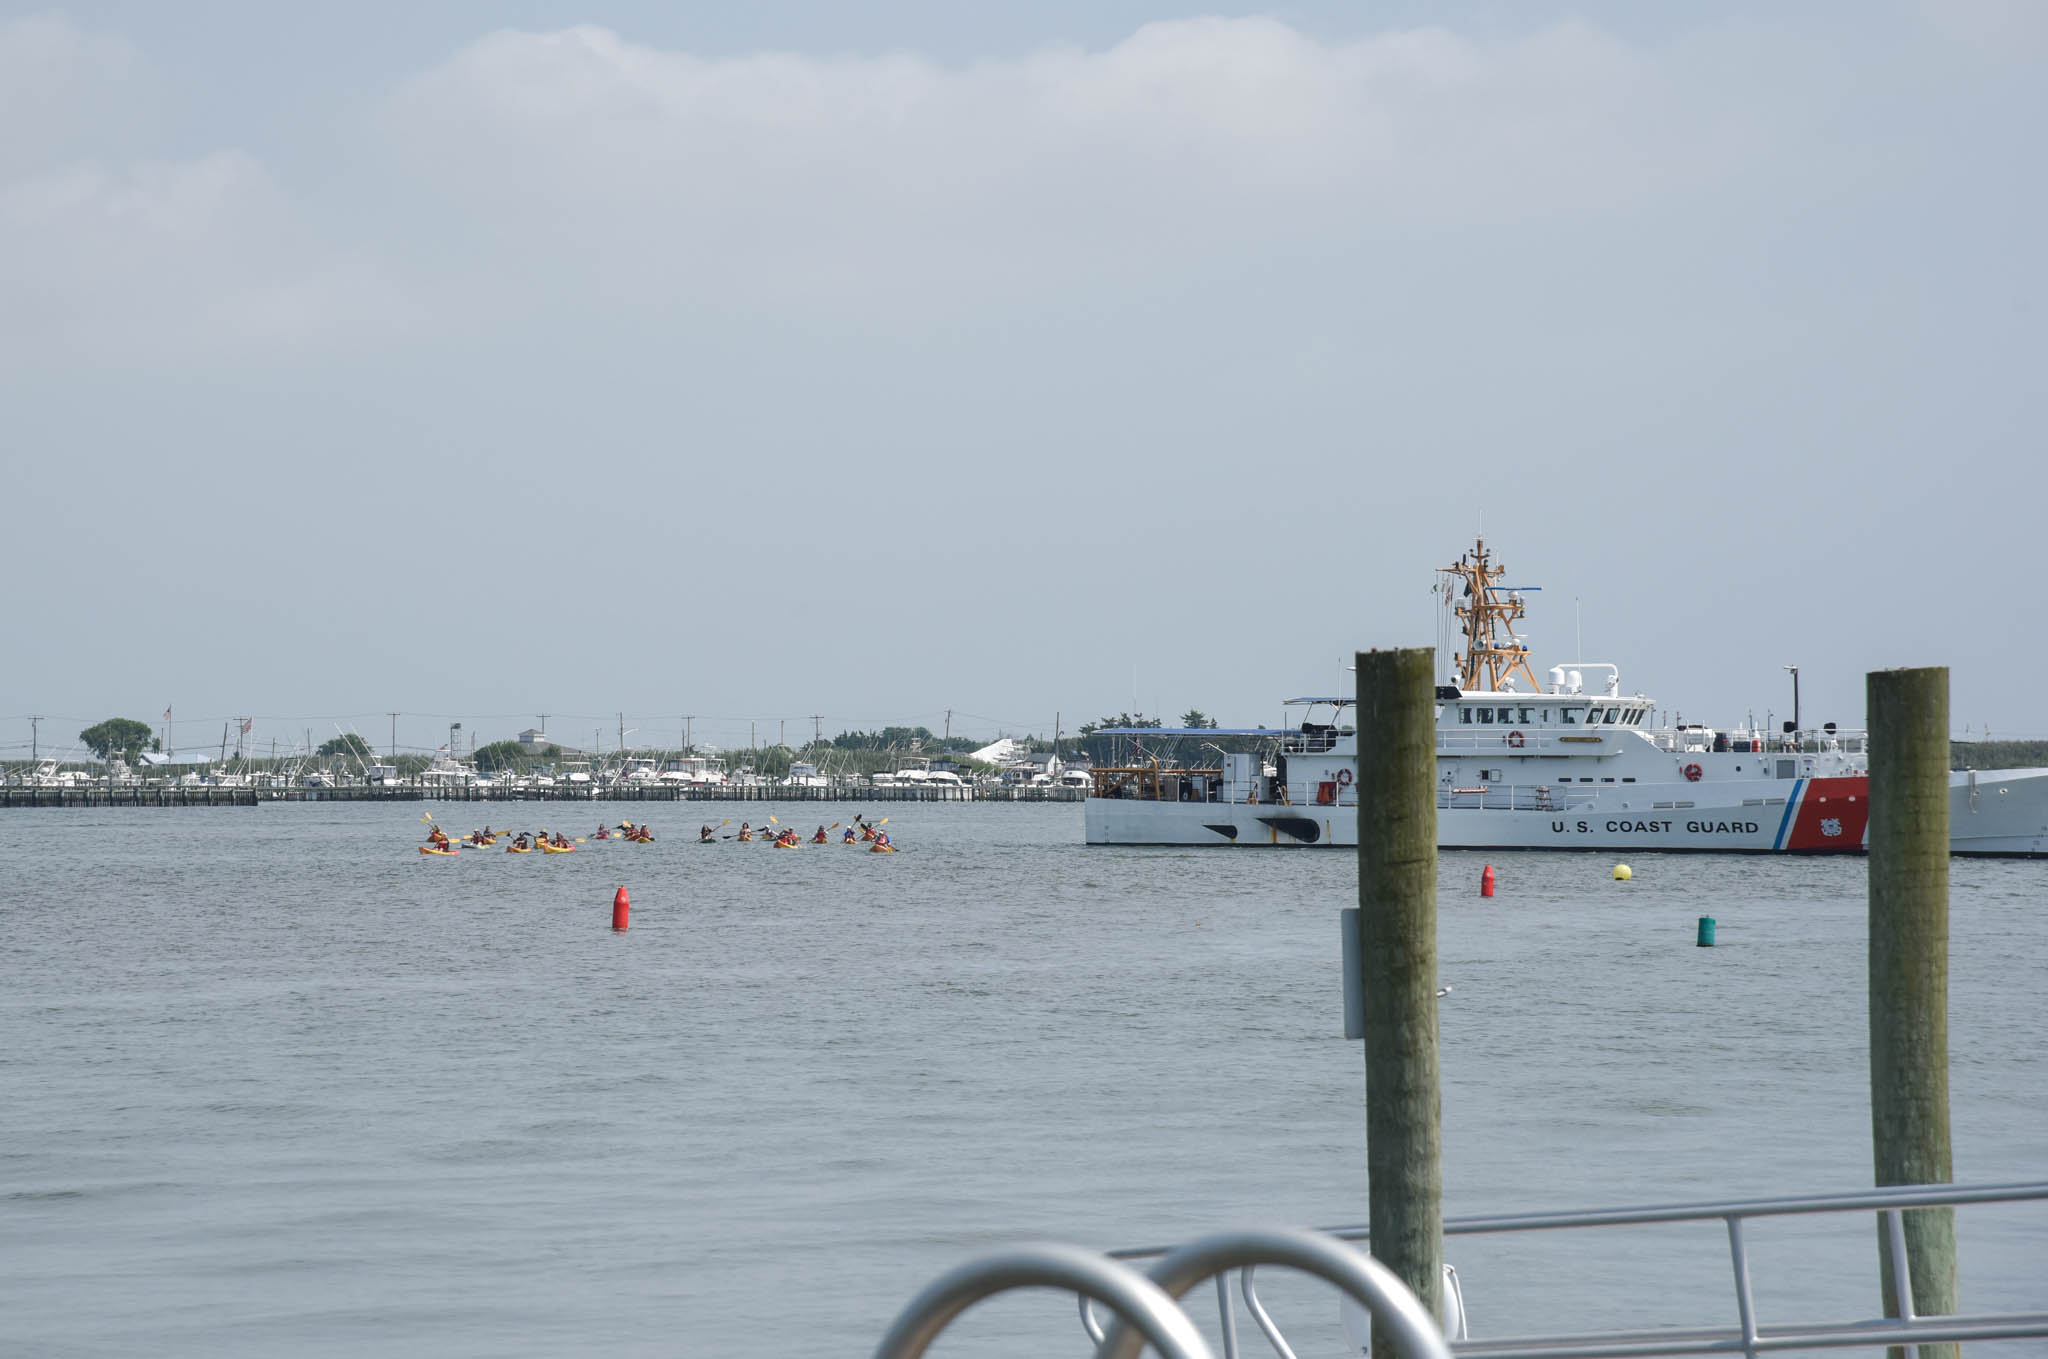 Kayaking In The Harbor past the USCG Base